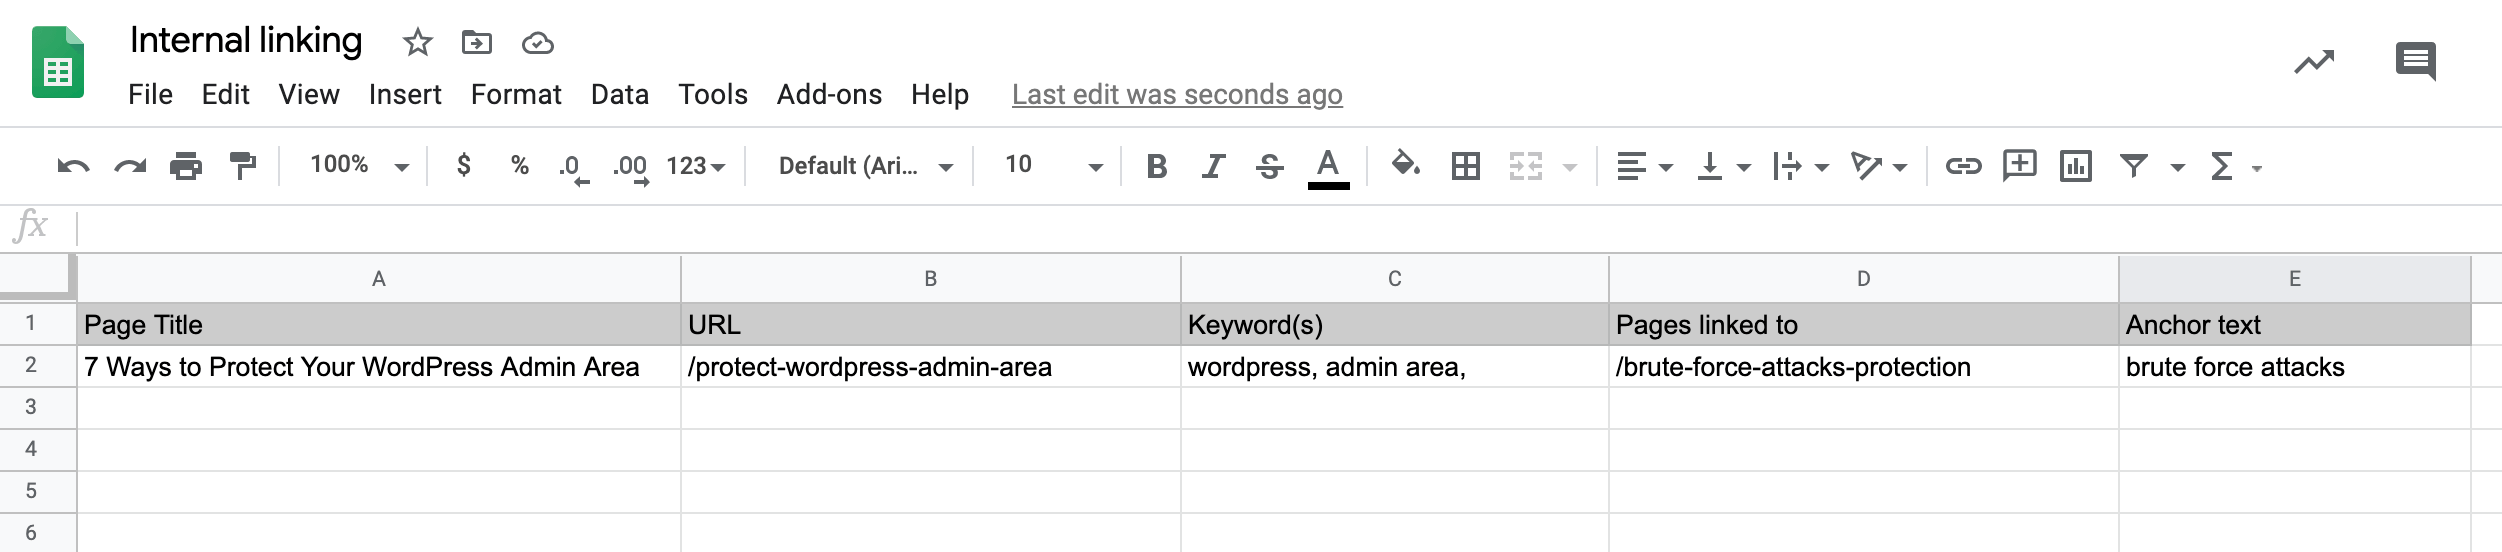 An internal linking spreadsheet created using Google Sheets.